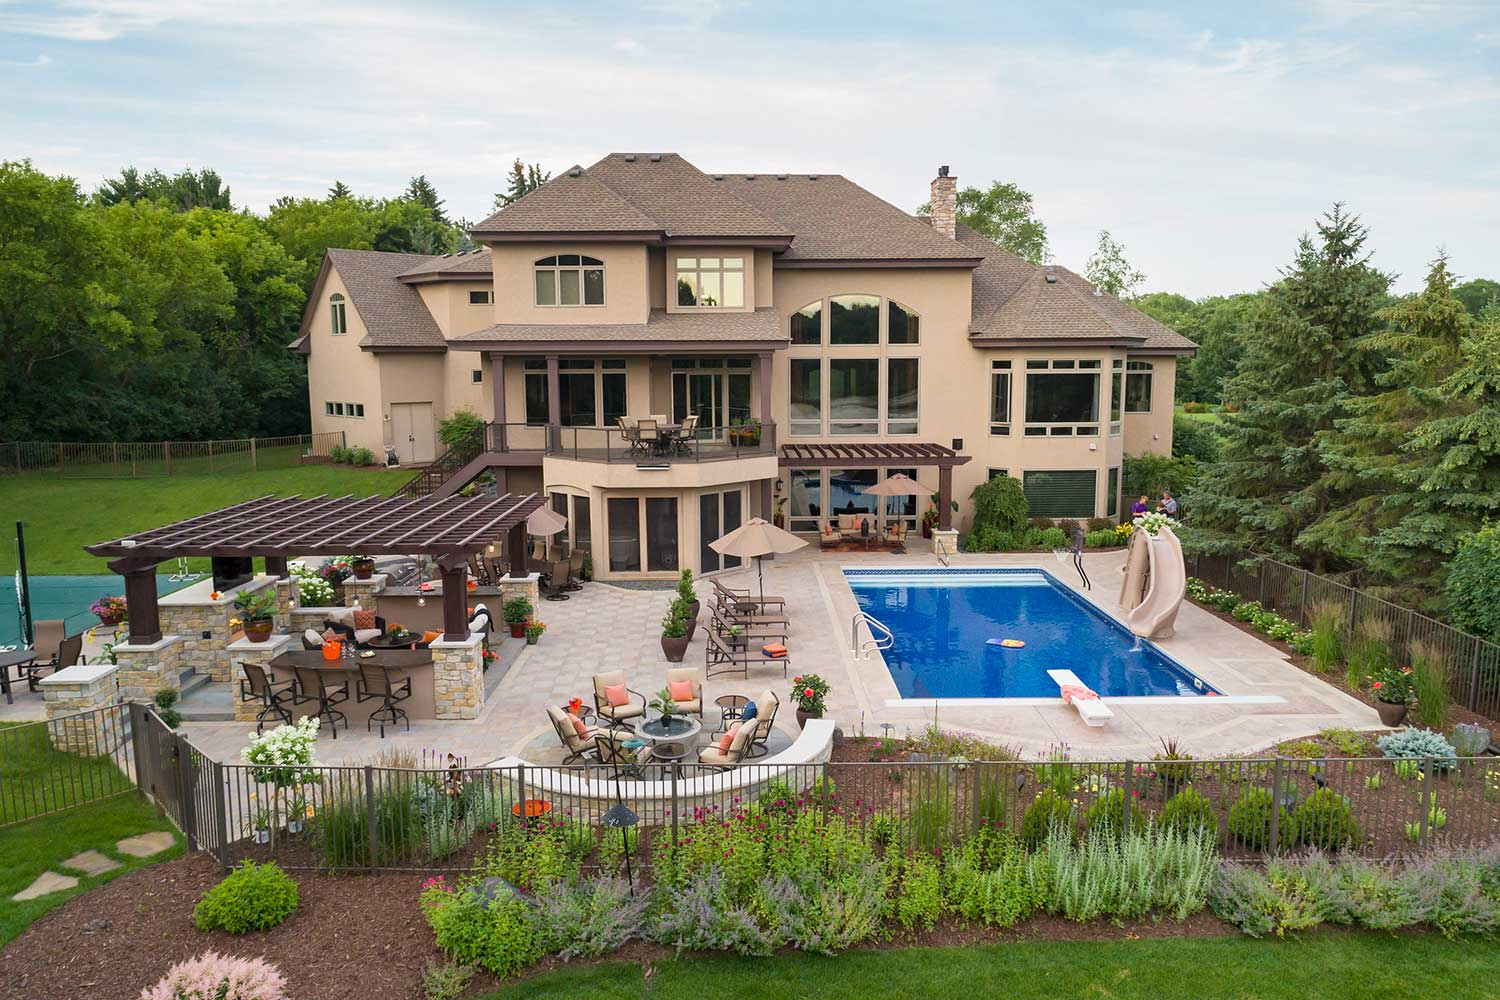 Minnesota Luxury Backyard Designs | Southview Design on backyard house ideas, backyard sea ideas, backyard lake ideas, backyard spring ideas, backyard tennis ideas, backyard holiday ideas, backyard river ideas, backyard fall ideas, backyard park ideas, backyard ocean ideas, backyard country ideas, backyard catering ideas, backyard construction ideas, backyard family ideas, backyard destination ideas, backyard fitness ideas, backyard winter ideas, backyard outdoor ideas, backyard campground ideas, backyard retreat ideas,